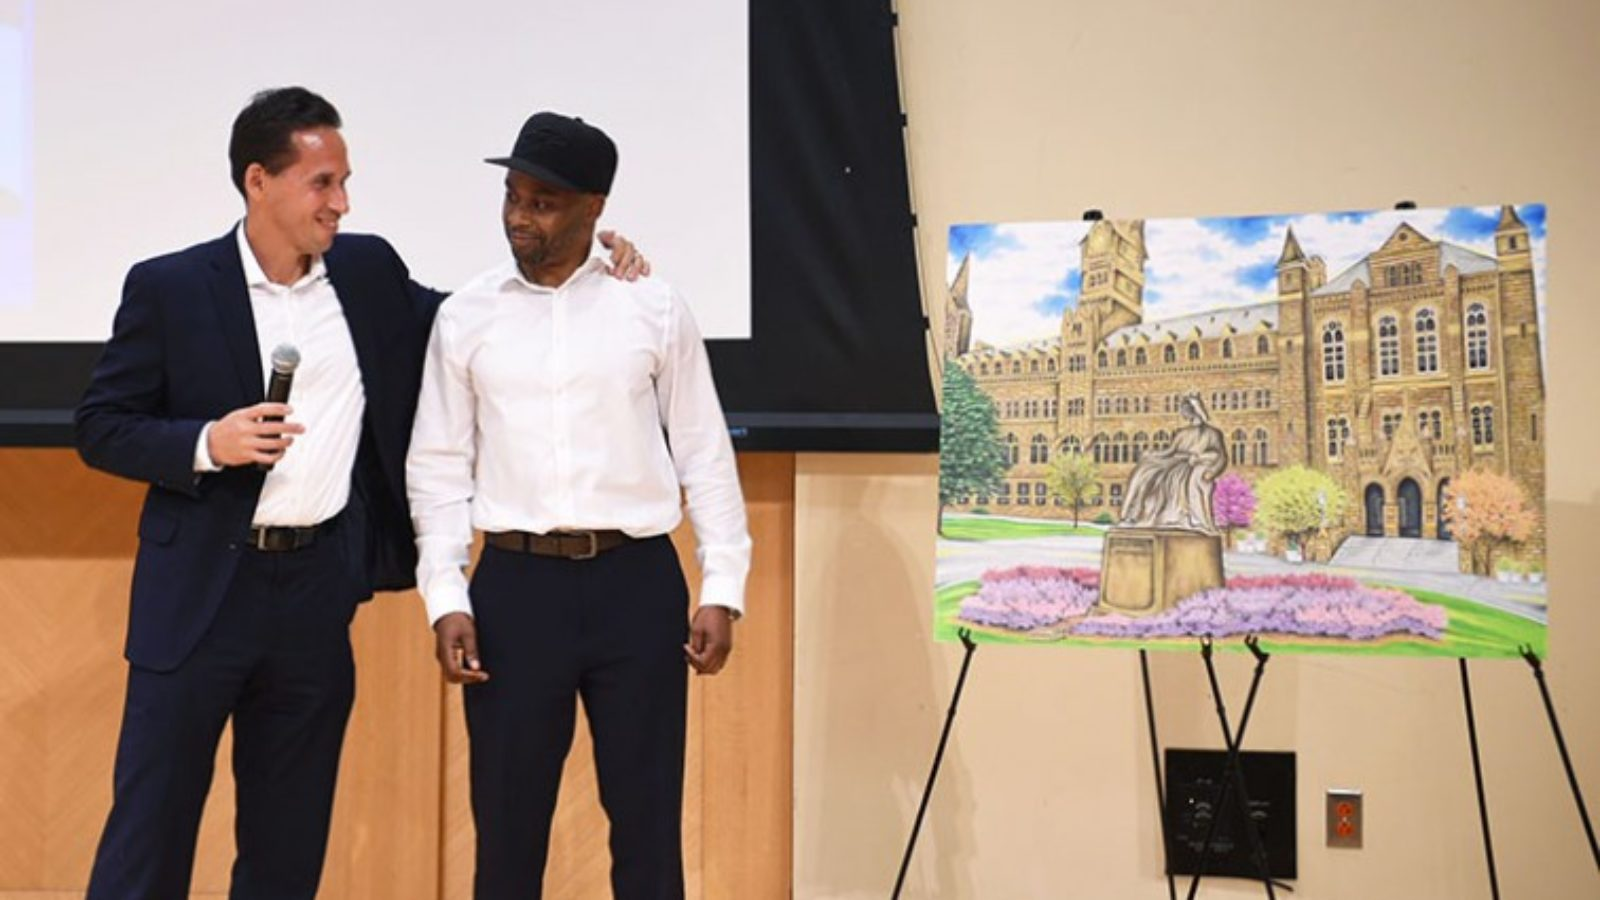 Marc Howard and Valentino Dixon on a stage with Dixon's artwork